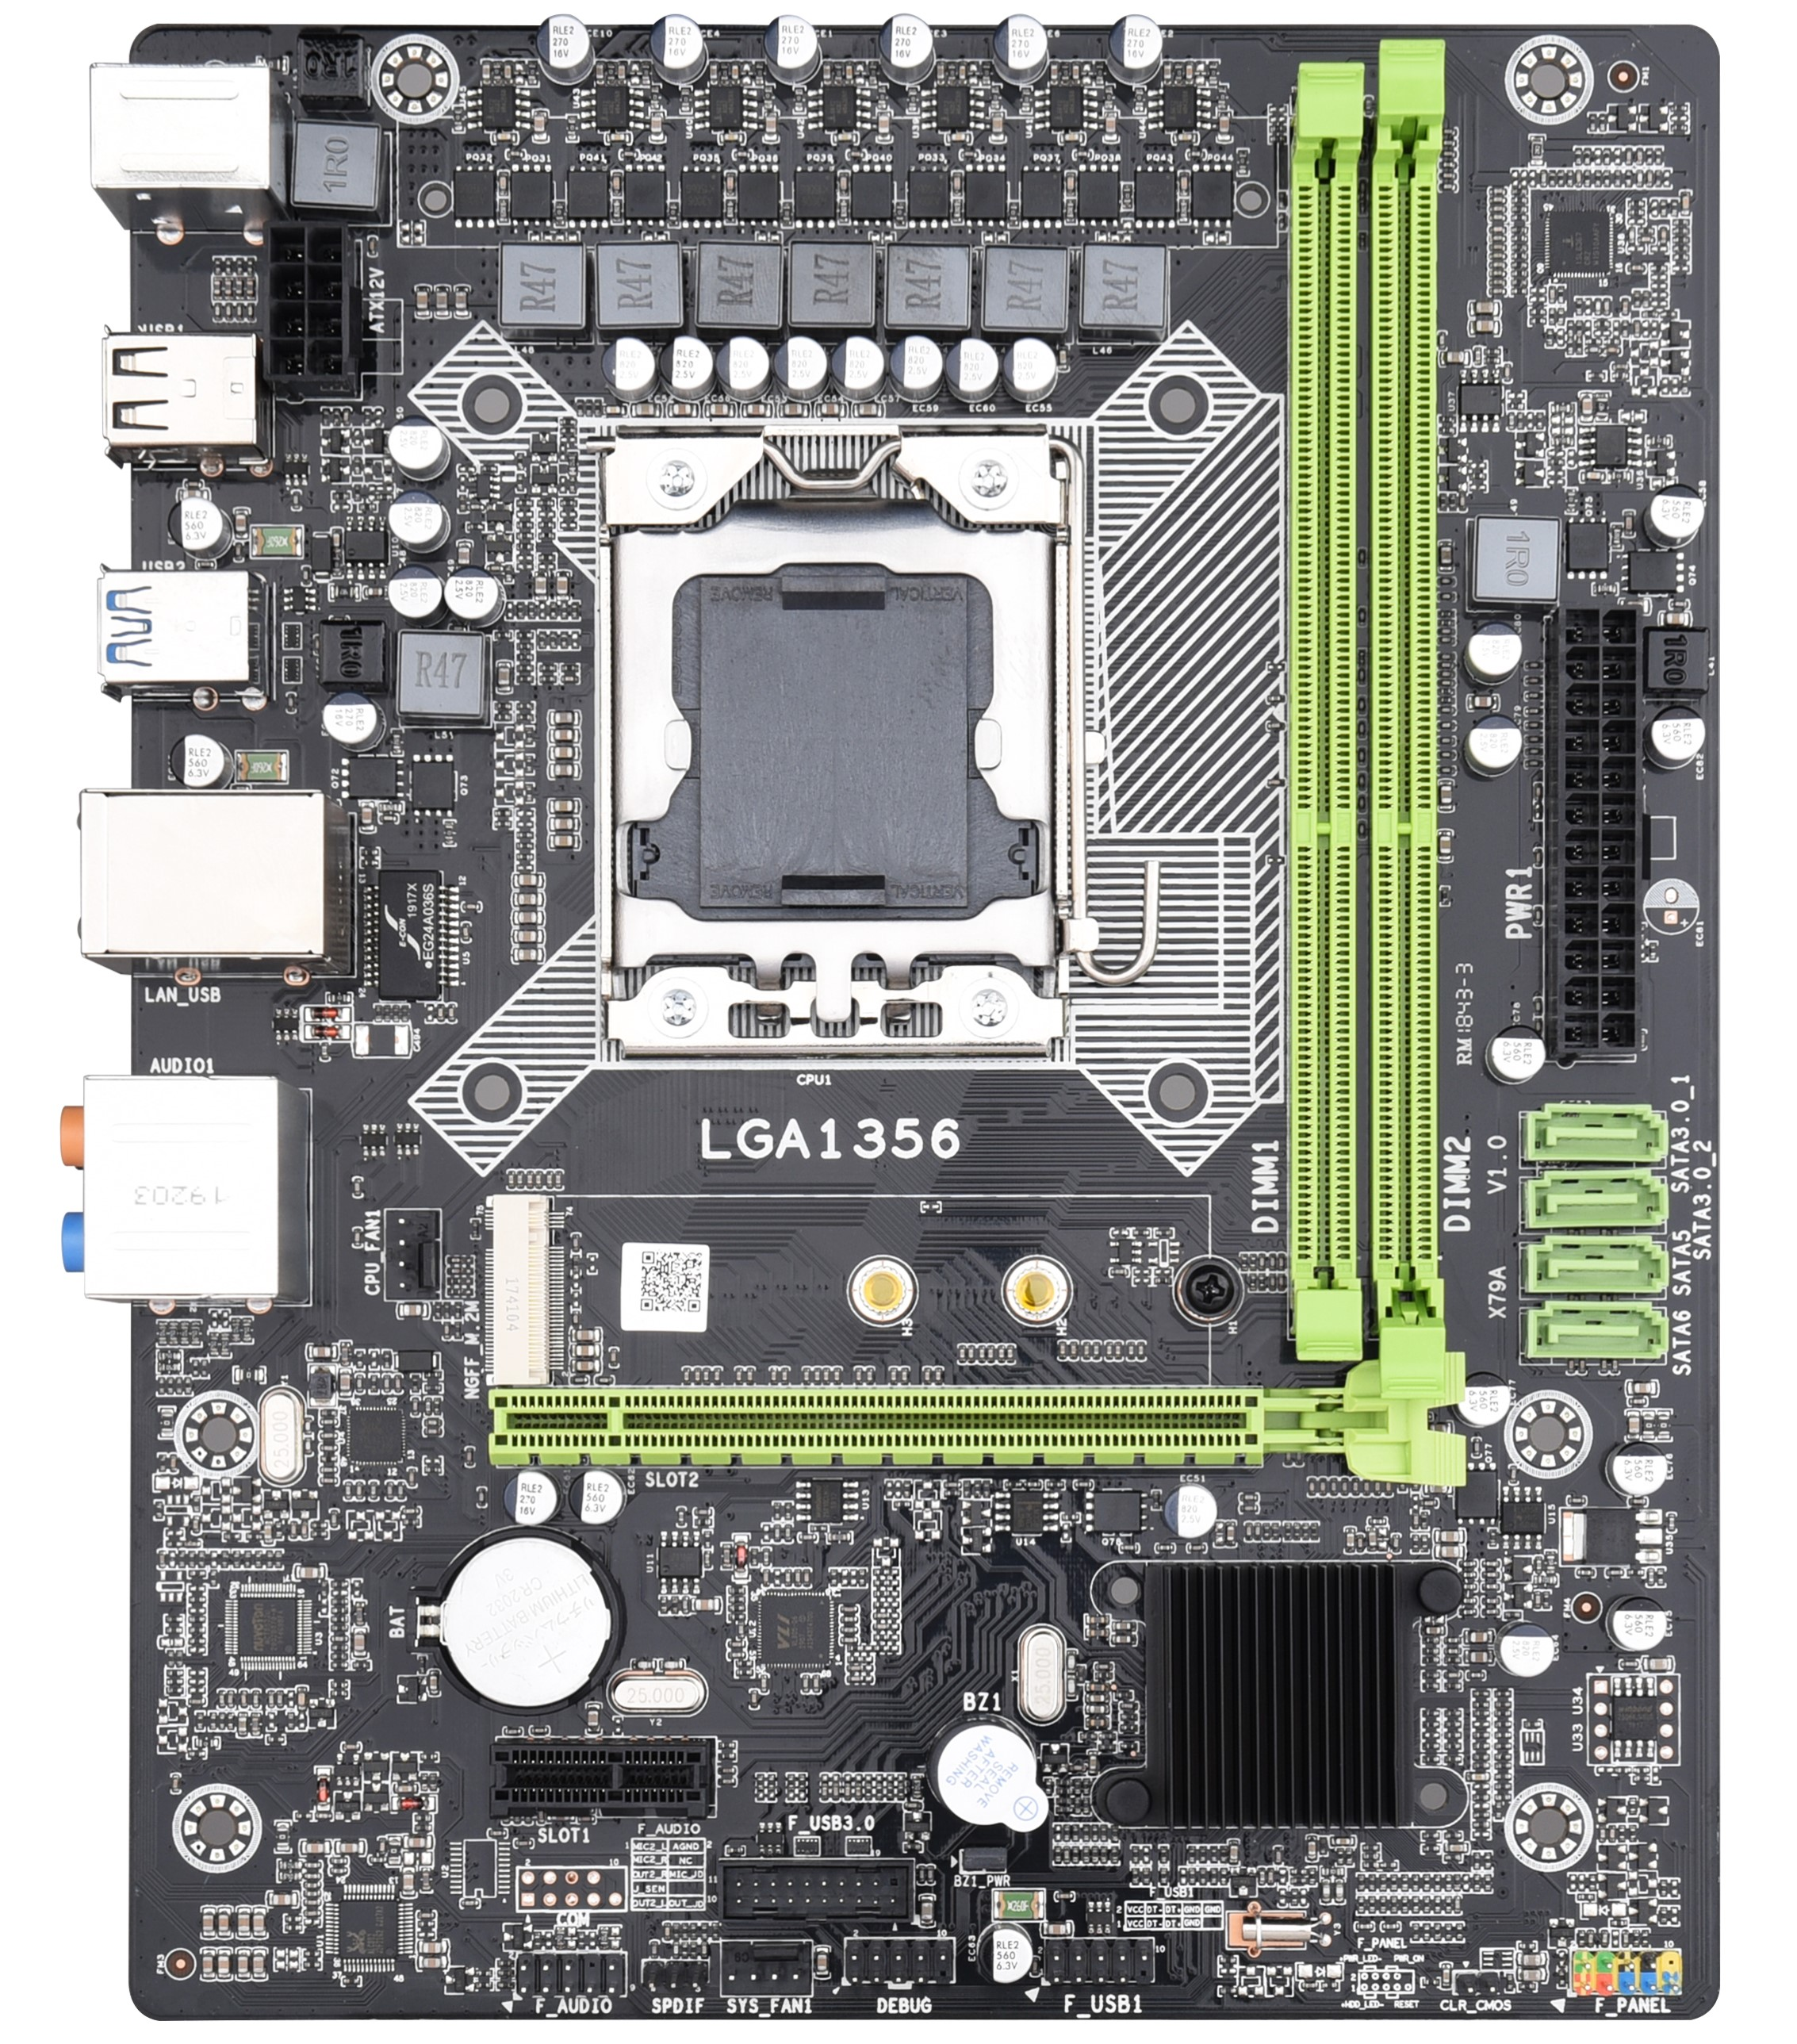 X79A Lga 1356 Motherboard Usb3.0 Support Reg Ecc Server Memory And Lga1356 Xeon E5 Processor For Desktop Server Ddr3 Ecc Reg R